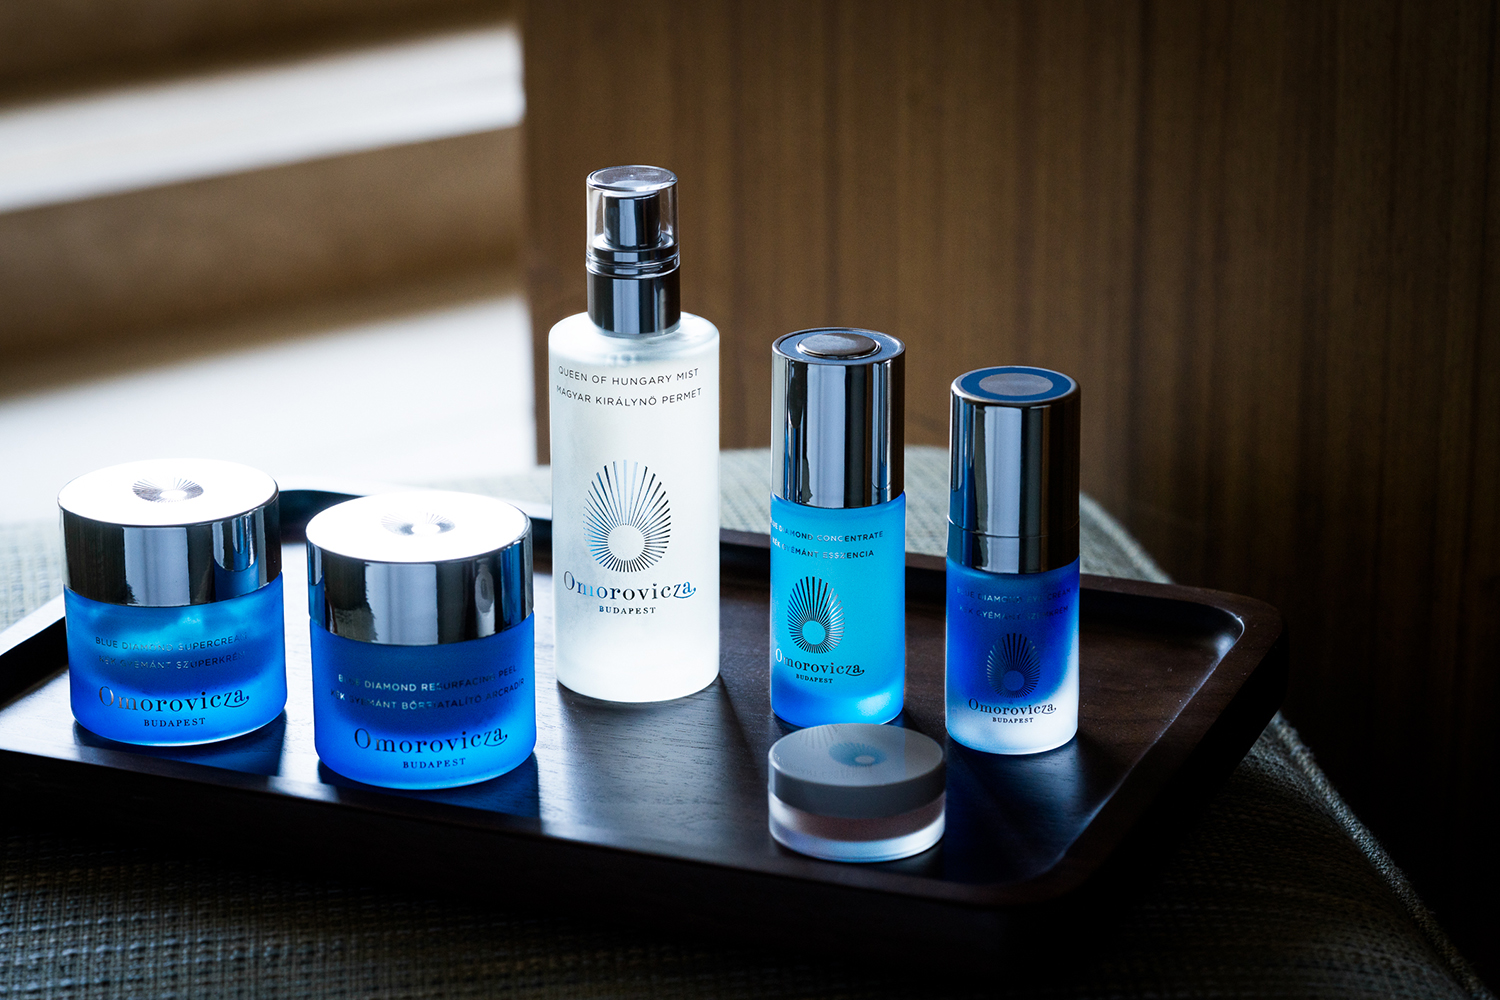 The spa carries Omorovicza skincare products.